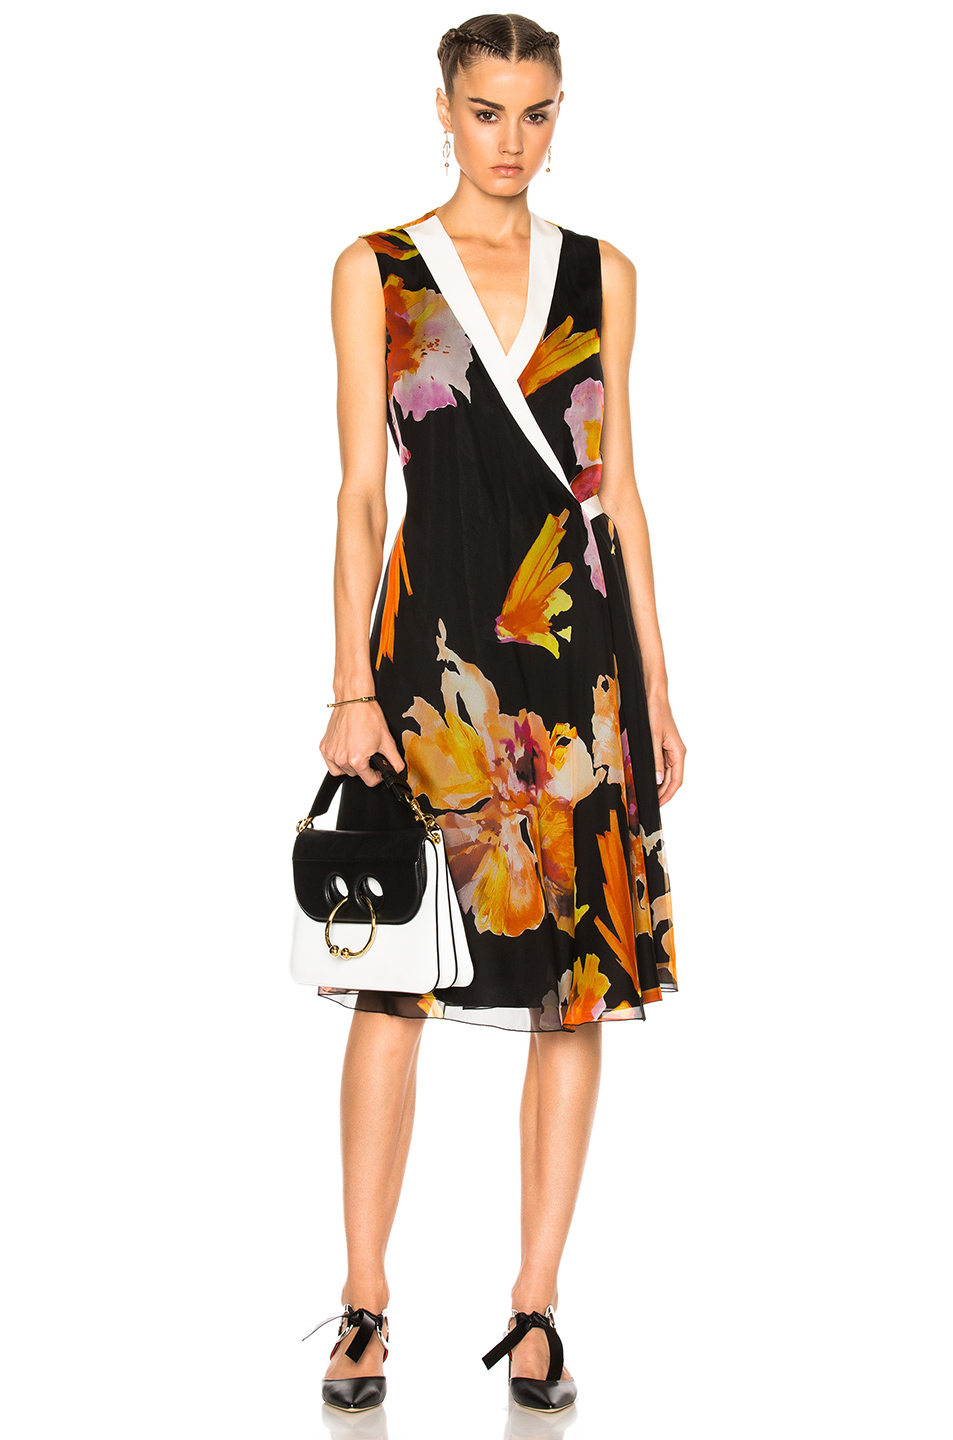 Lanvin Floral Wrap Dress in Black,Floral,Orange